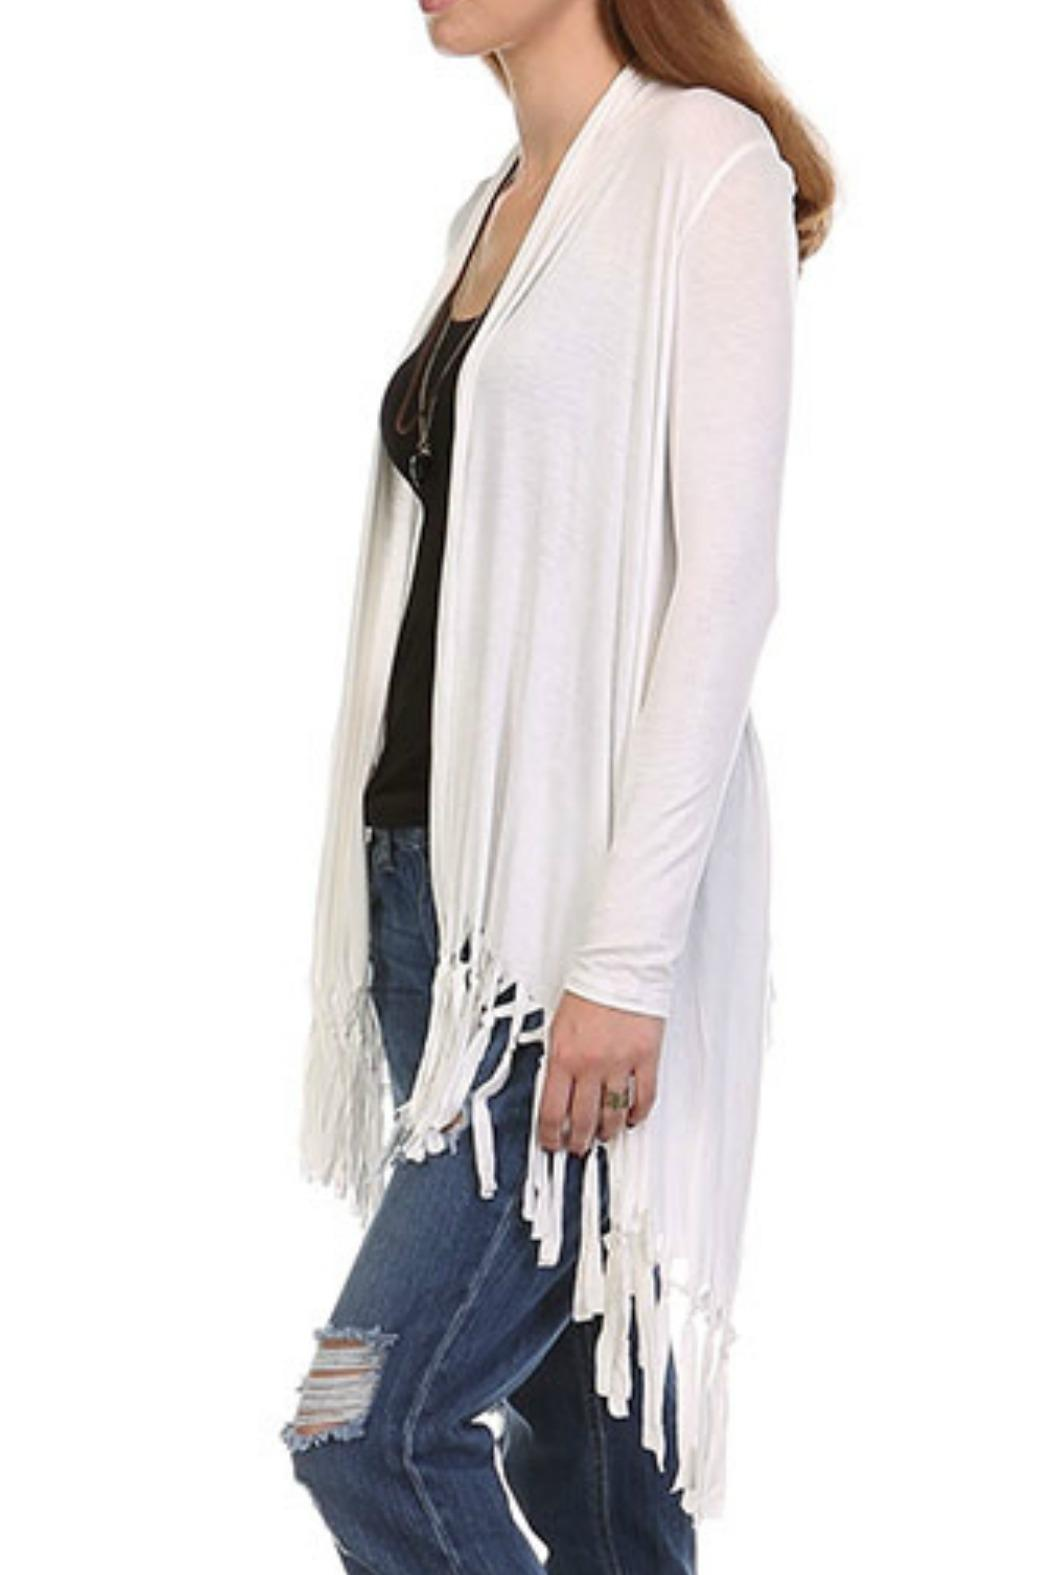 Heart and Hips Fringe Cardigan - Back Cropped Image - Heart And Hips Fringe Cardigan From California By Last Call